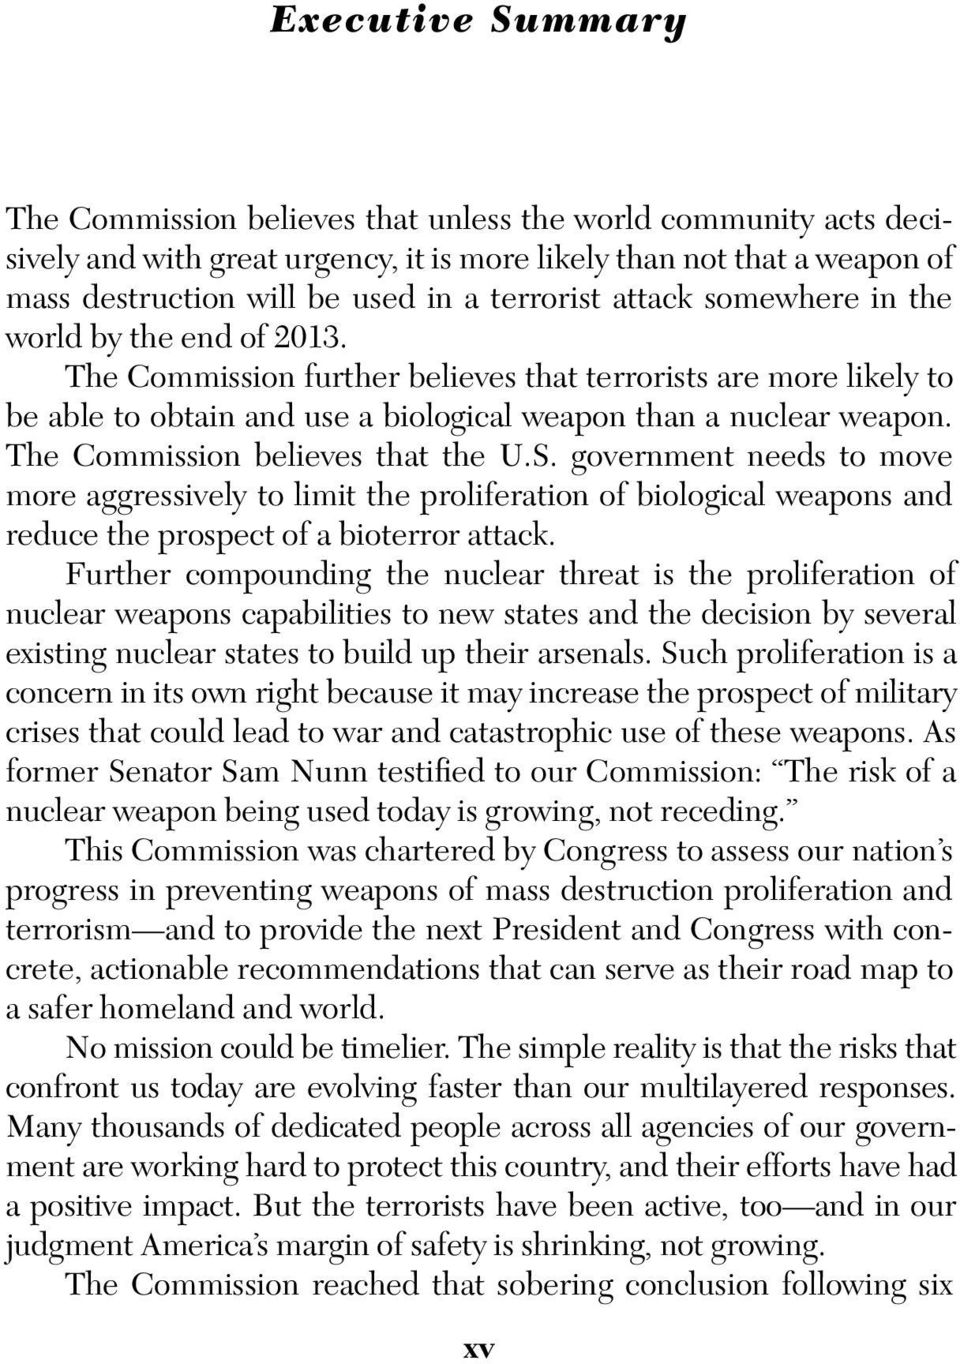 The Commission believes that the U.S. government needs to move more aggressively to limit the proliferation of biological weapons and reduce the prospect of a bioterror attack.